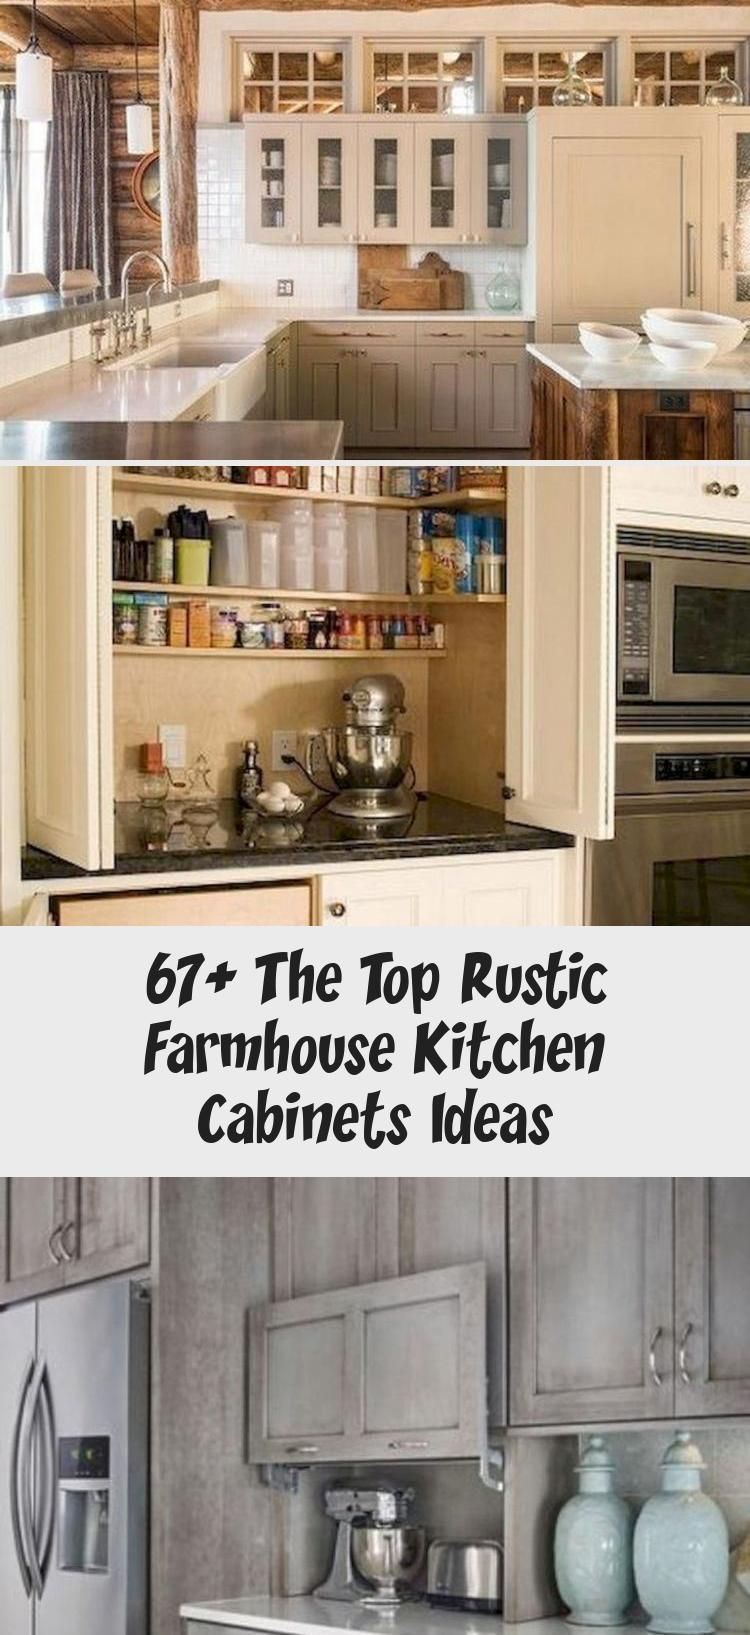 67 The Top Rustic Farmhouse Kitchen Cabinets Ideas Rustic Home Decor Farmhous Cabin In 2020 Rustic Farmhouse Kitchen Farmhouse Kitchen Cabinets Farmhouse Kitchen